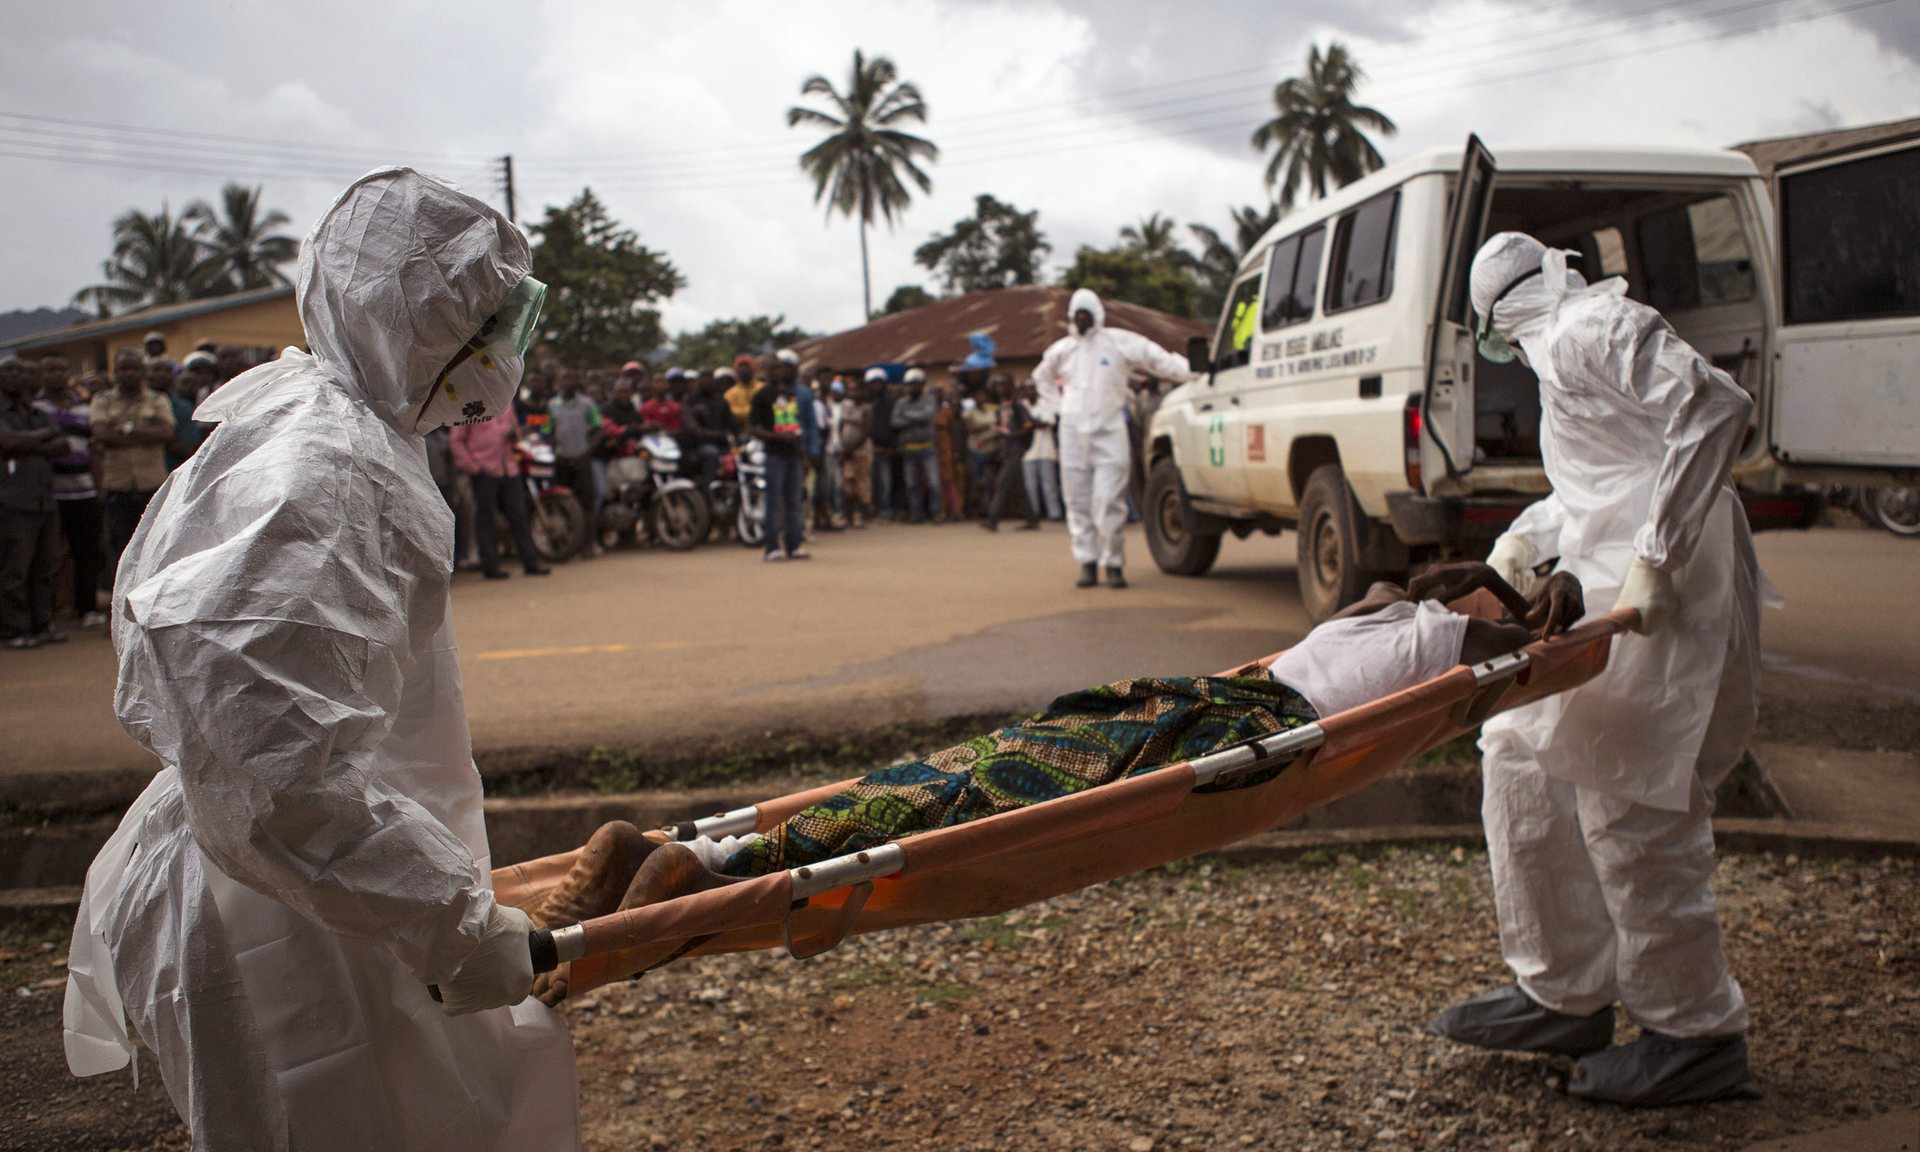 Healthcare workers carry a suspected Ebola sufferer to an ambulance in Kenema. Photograph: Tanya Bindra/AP